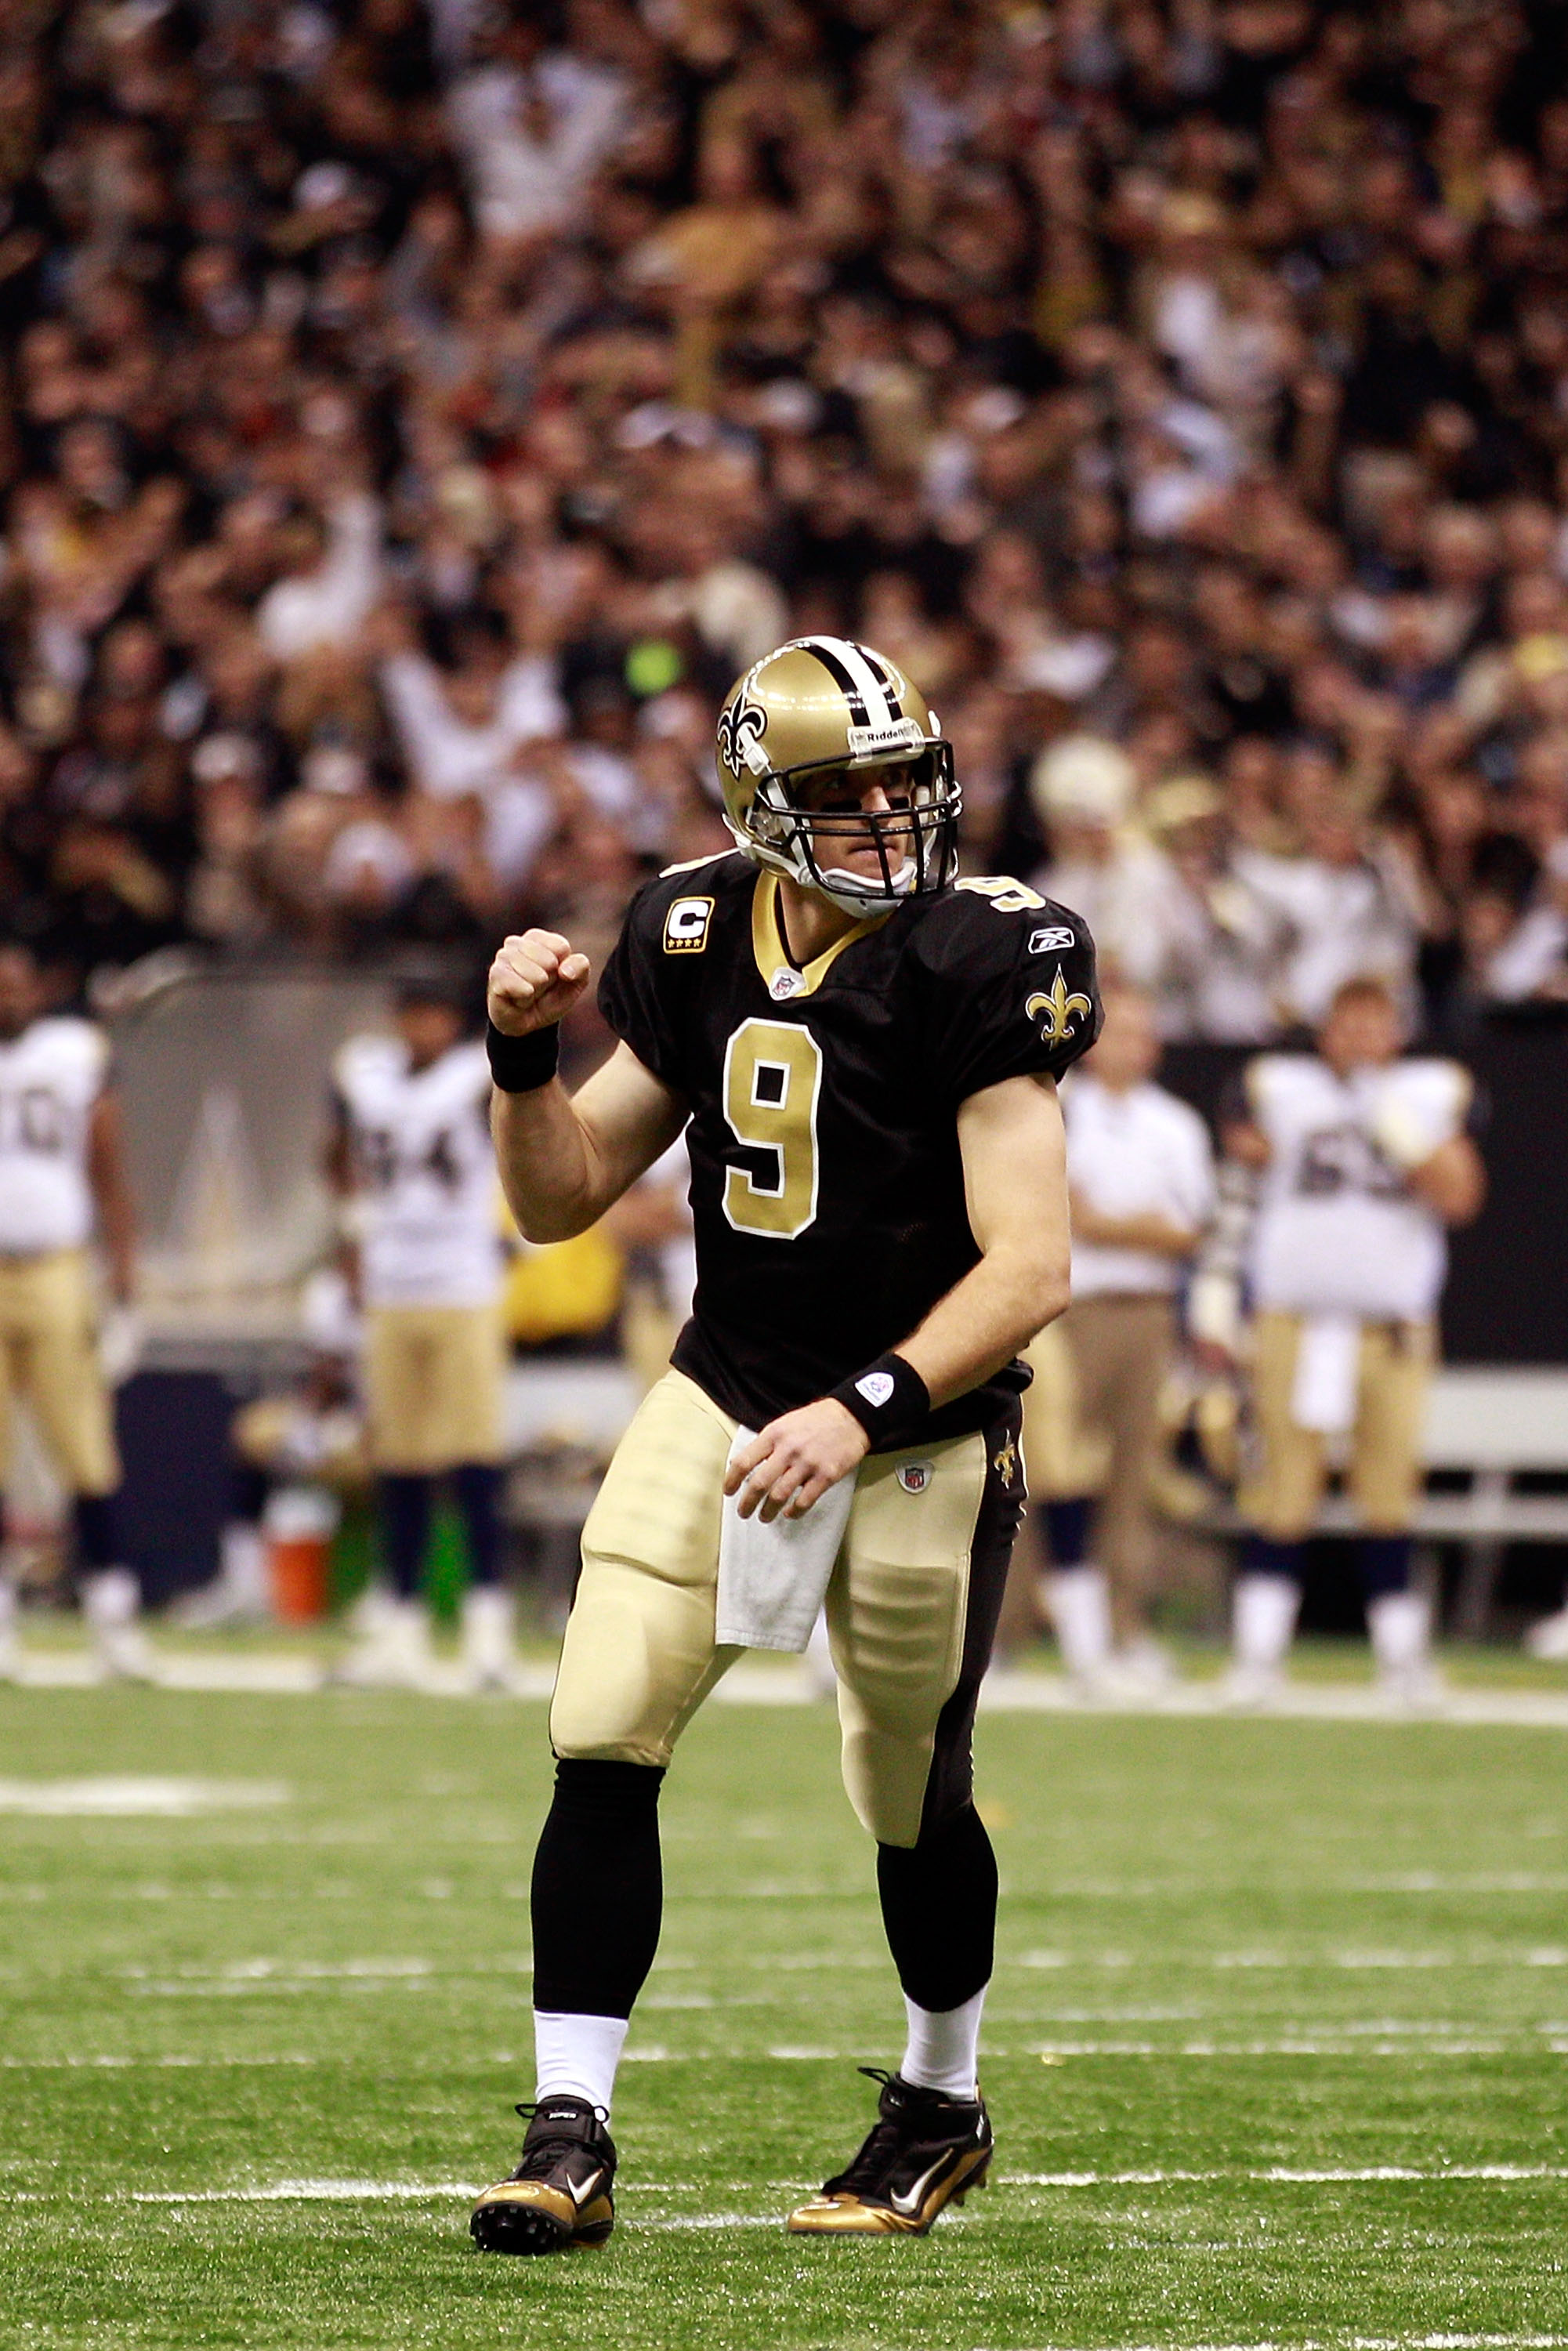 NEW ORLEANS, LA - DECEMBER 12:  Drew Brees #9 of the New Orleans Saints celebrates after scoring a touchdown against the St. Louis Rams at the Louisiana Superdome on December 12, 2010 in New Orleans, Louisiana. The Saints defeated the Rams 31-13.  (Photo